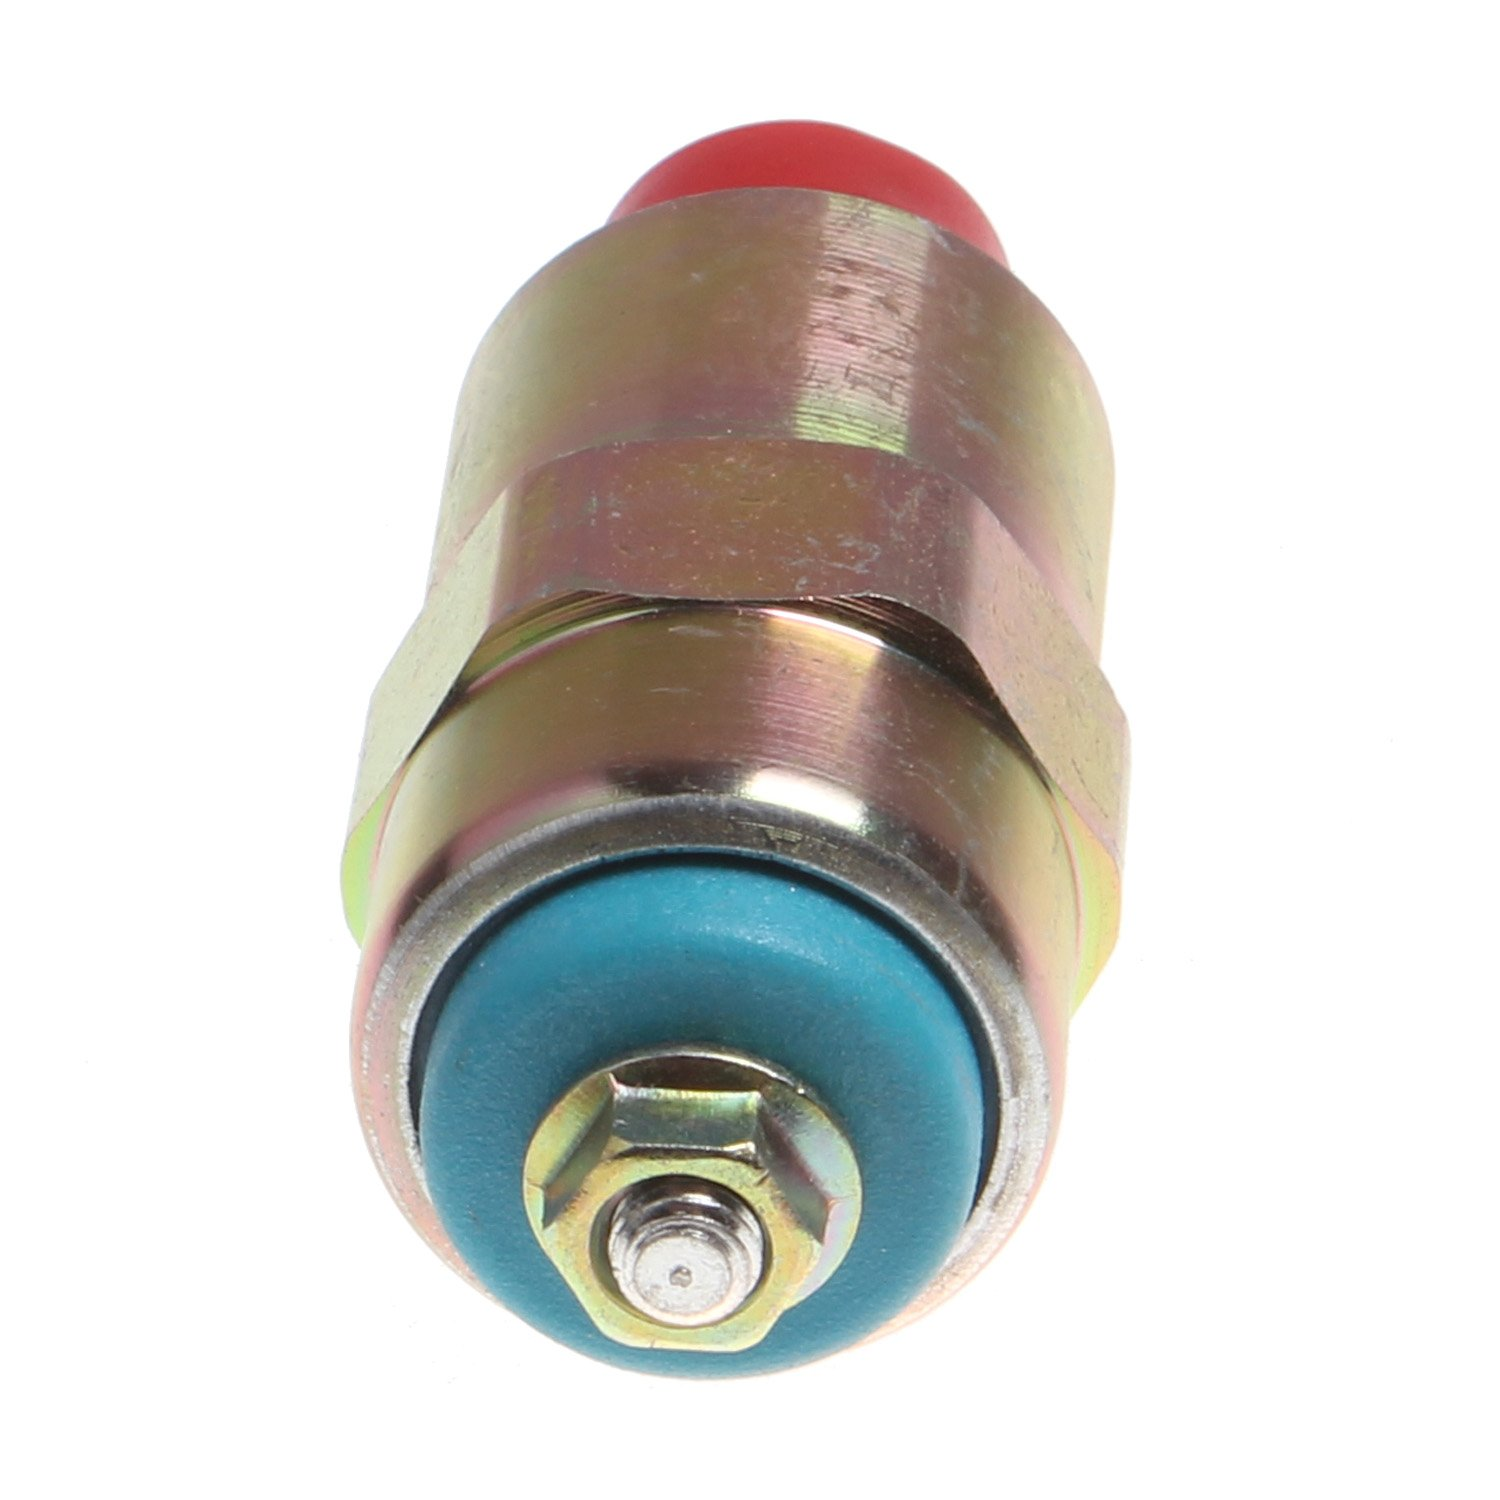 Mover Parts Fuel Shut Off Injection Solenoid For Ford DPA DPS CAV LUCAS 7167-620A